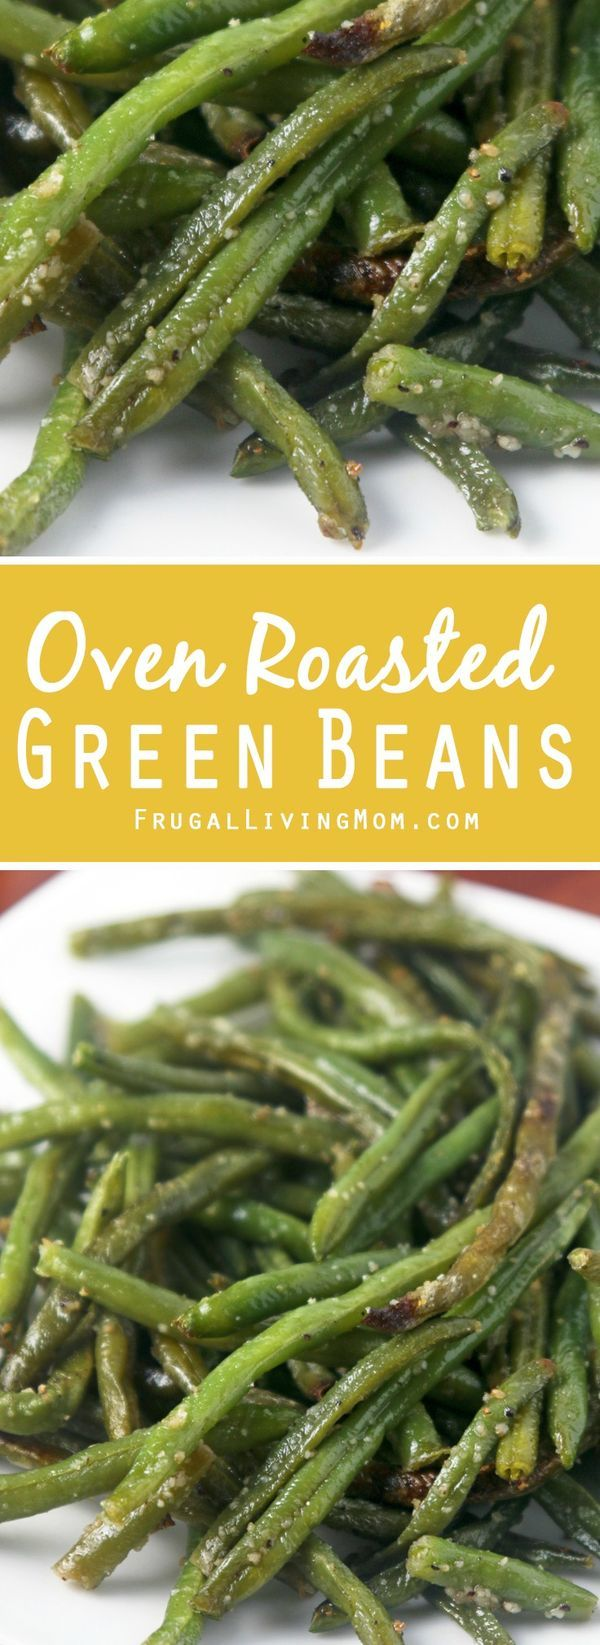 I make a version of these oven roasted green beans and love them! My family snacks on them all day.